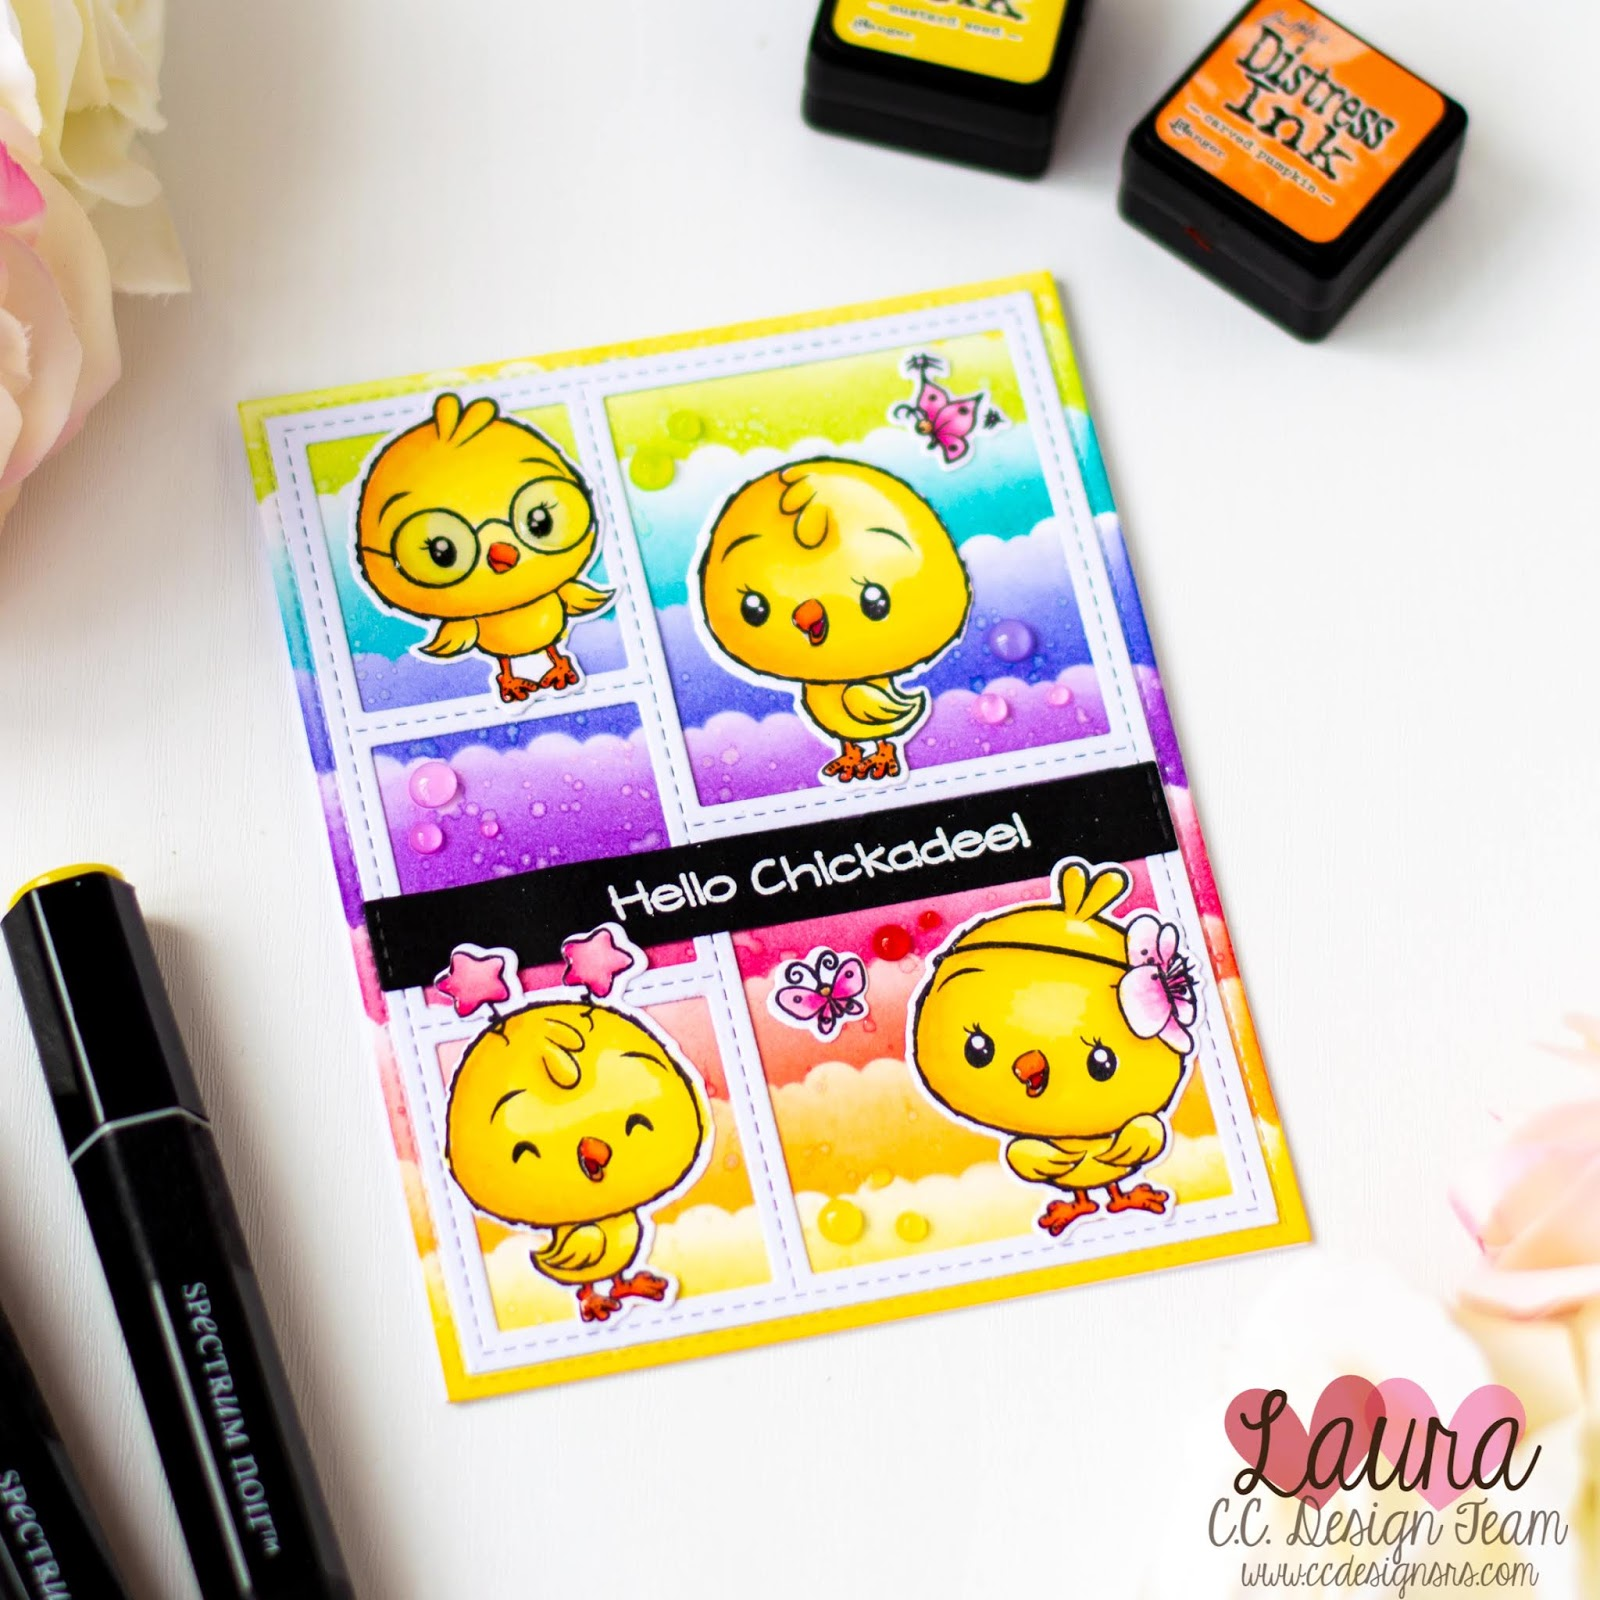 Laura Volpes: Distress Ink Stenciled Rainbow - Handmade Card feat